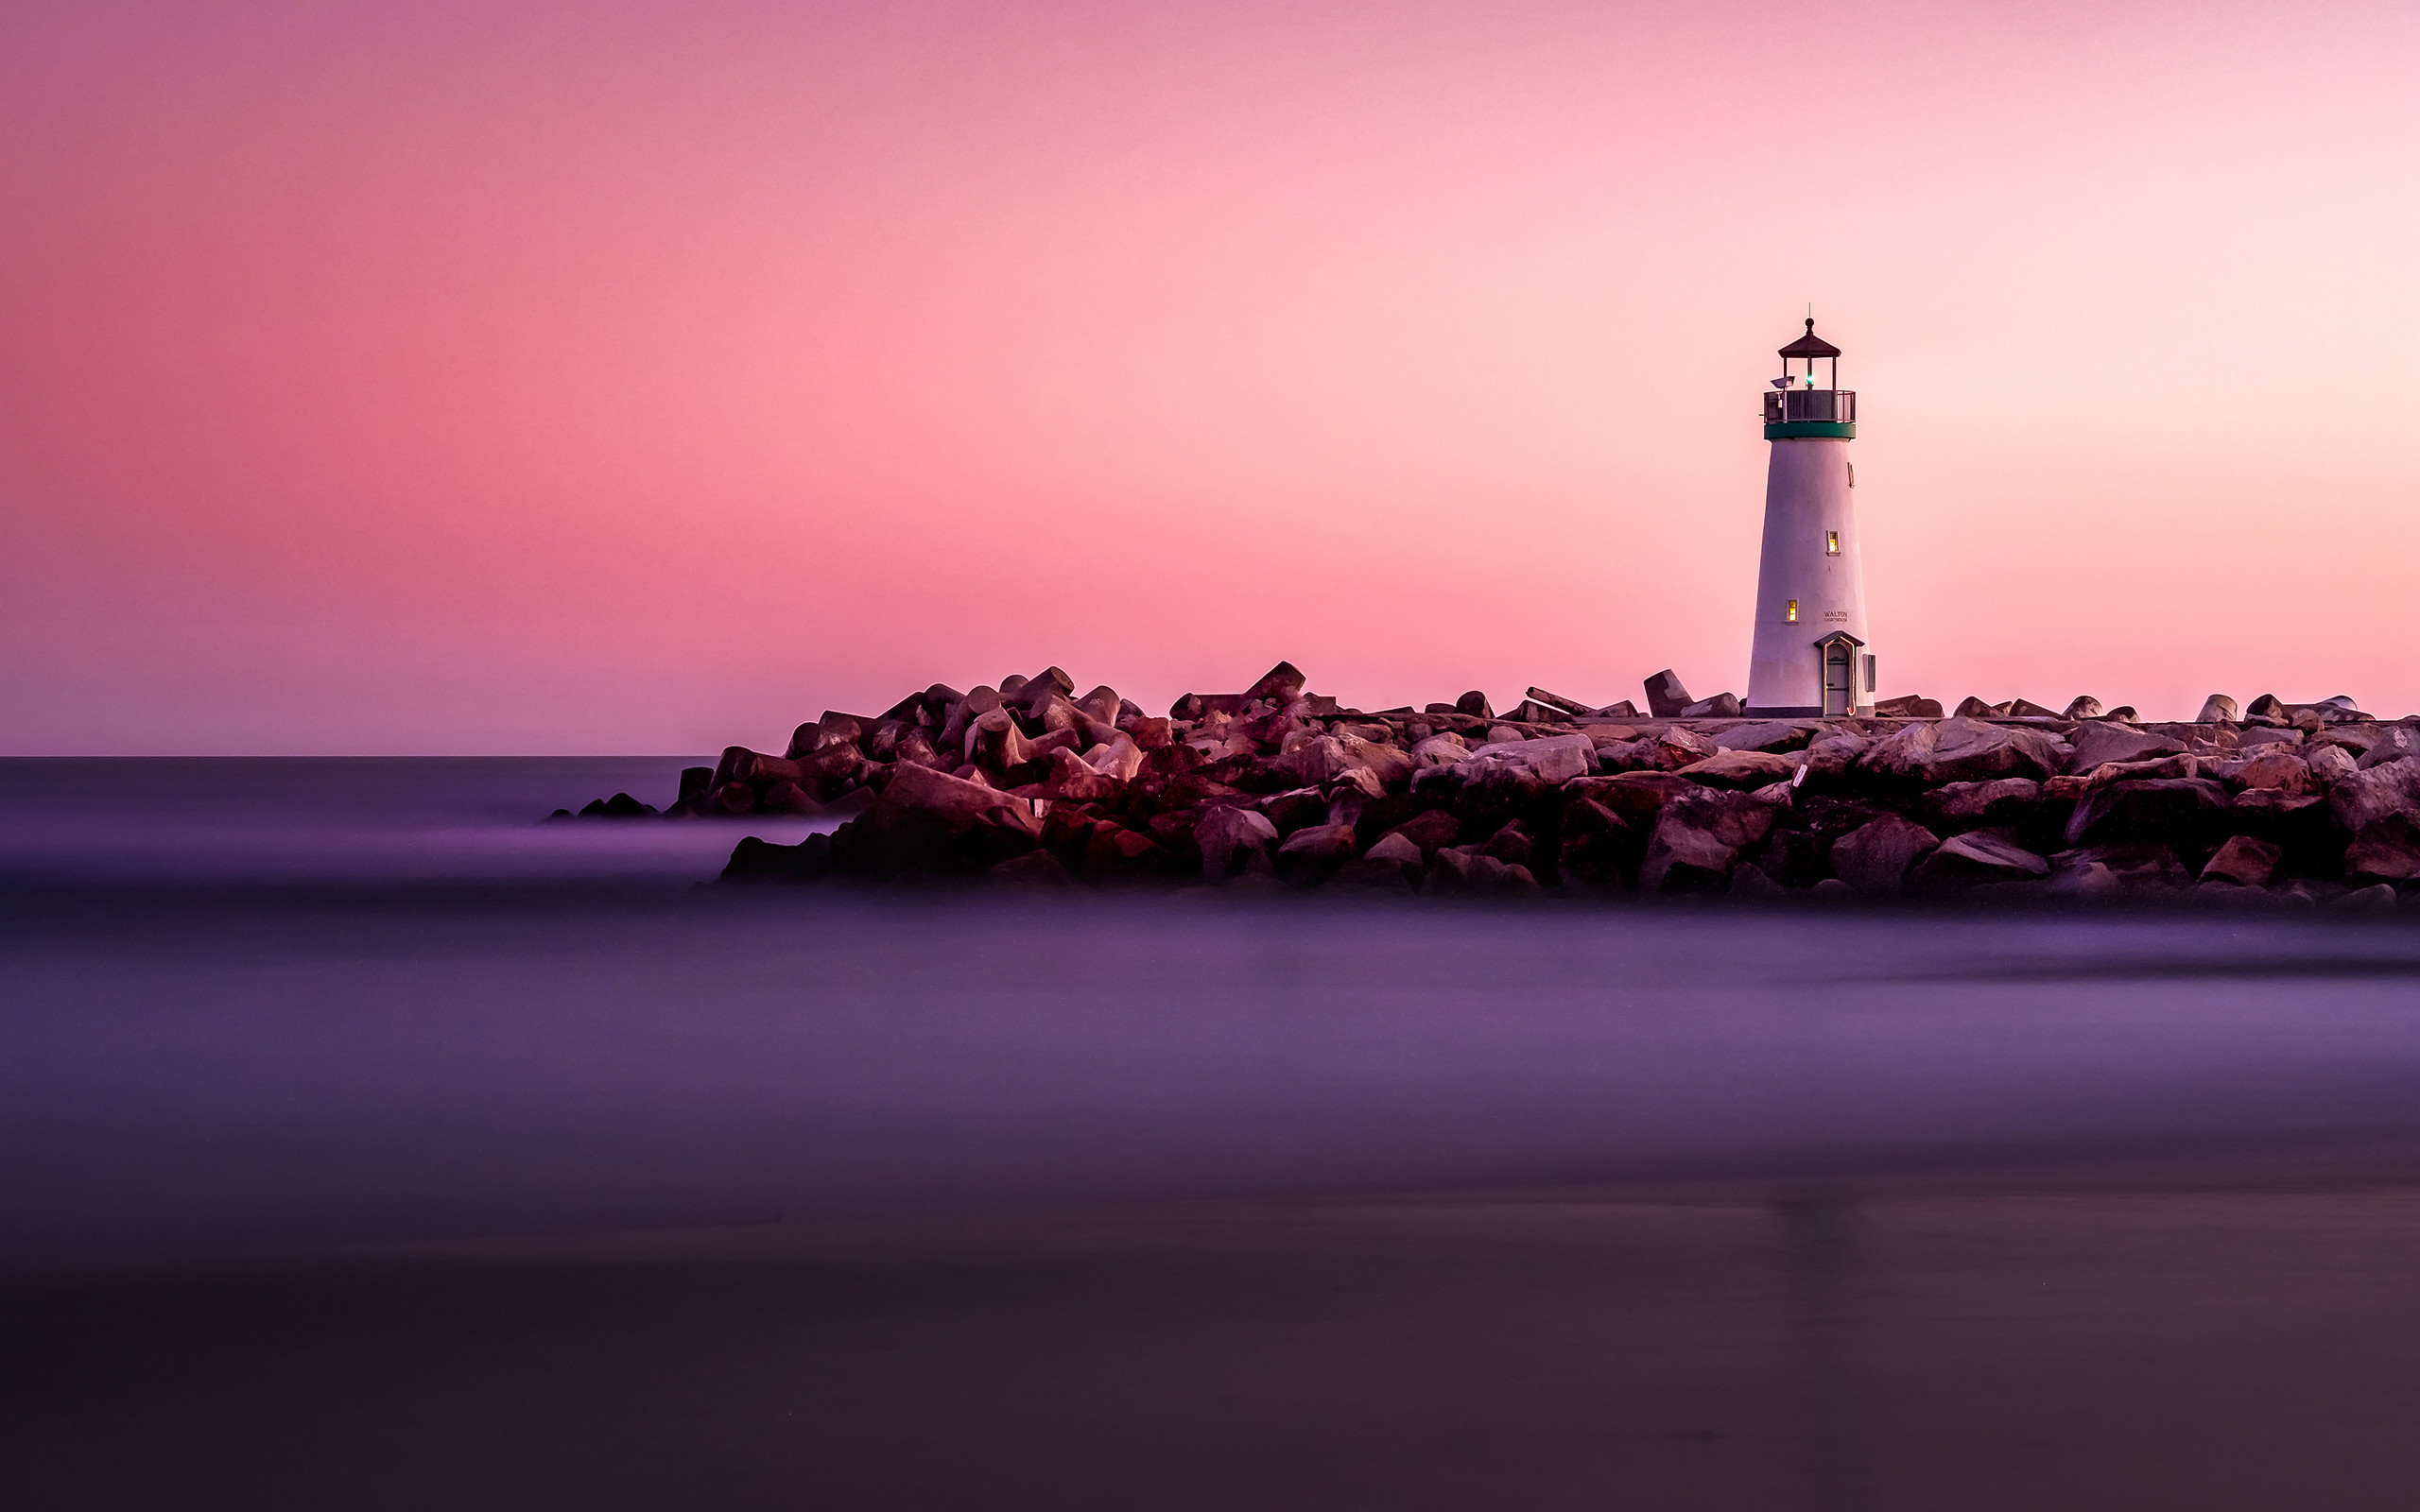 2560x1600 Daily Wallpaper: Lighthouse in Santa Cruz, California | I Like To Waste My  Time